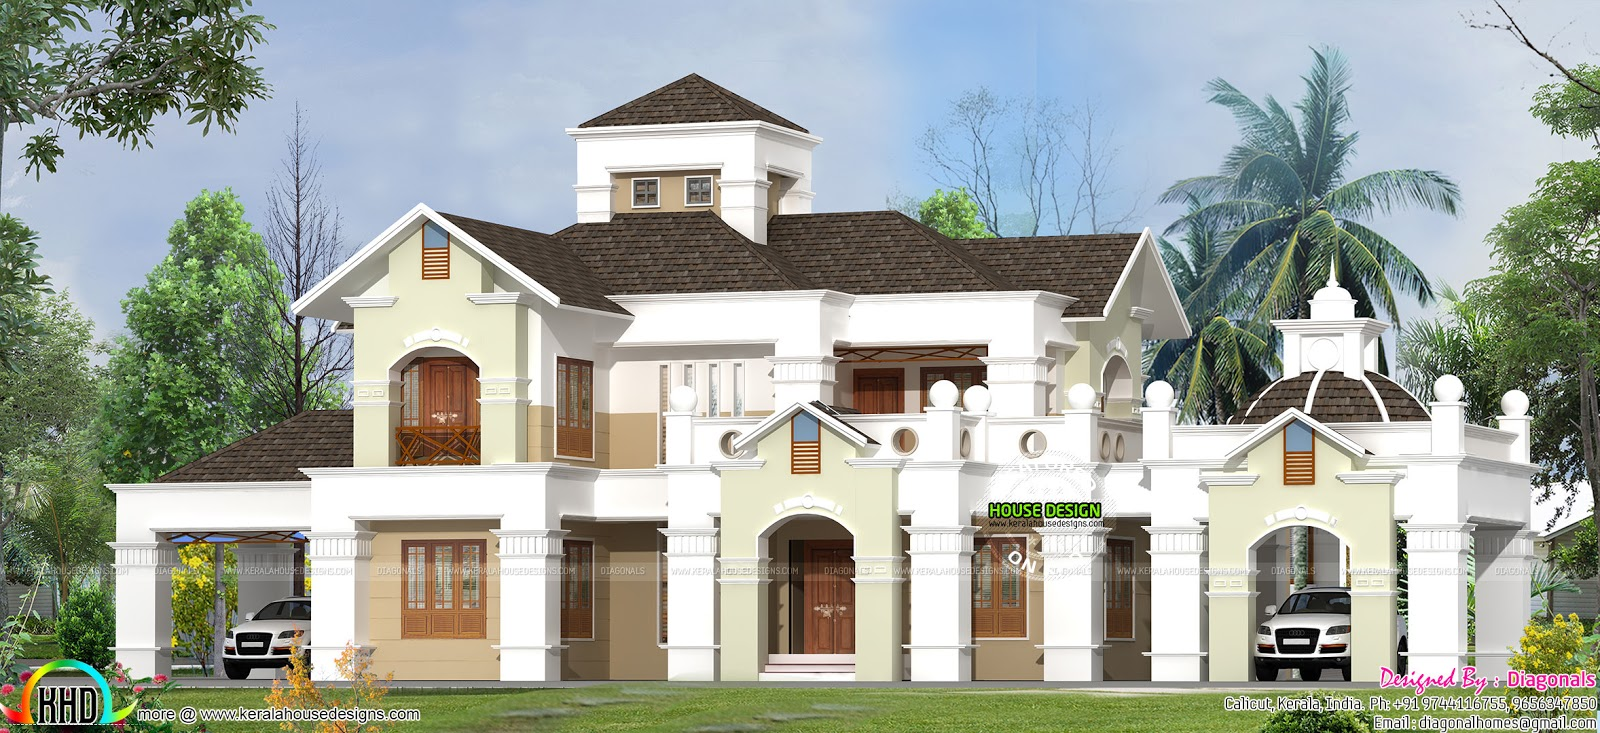 Colonial home at calicut kerala home design and floor plans for Colonial style homes in kerala